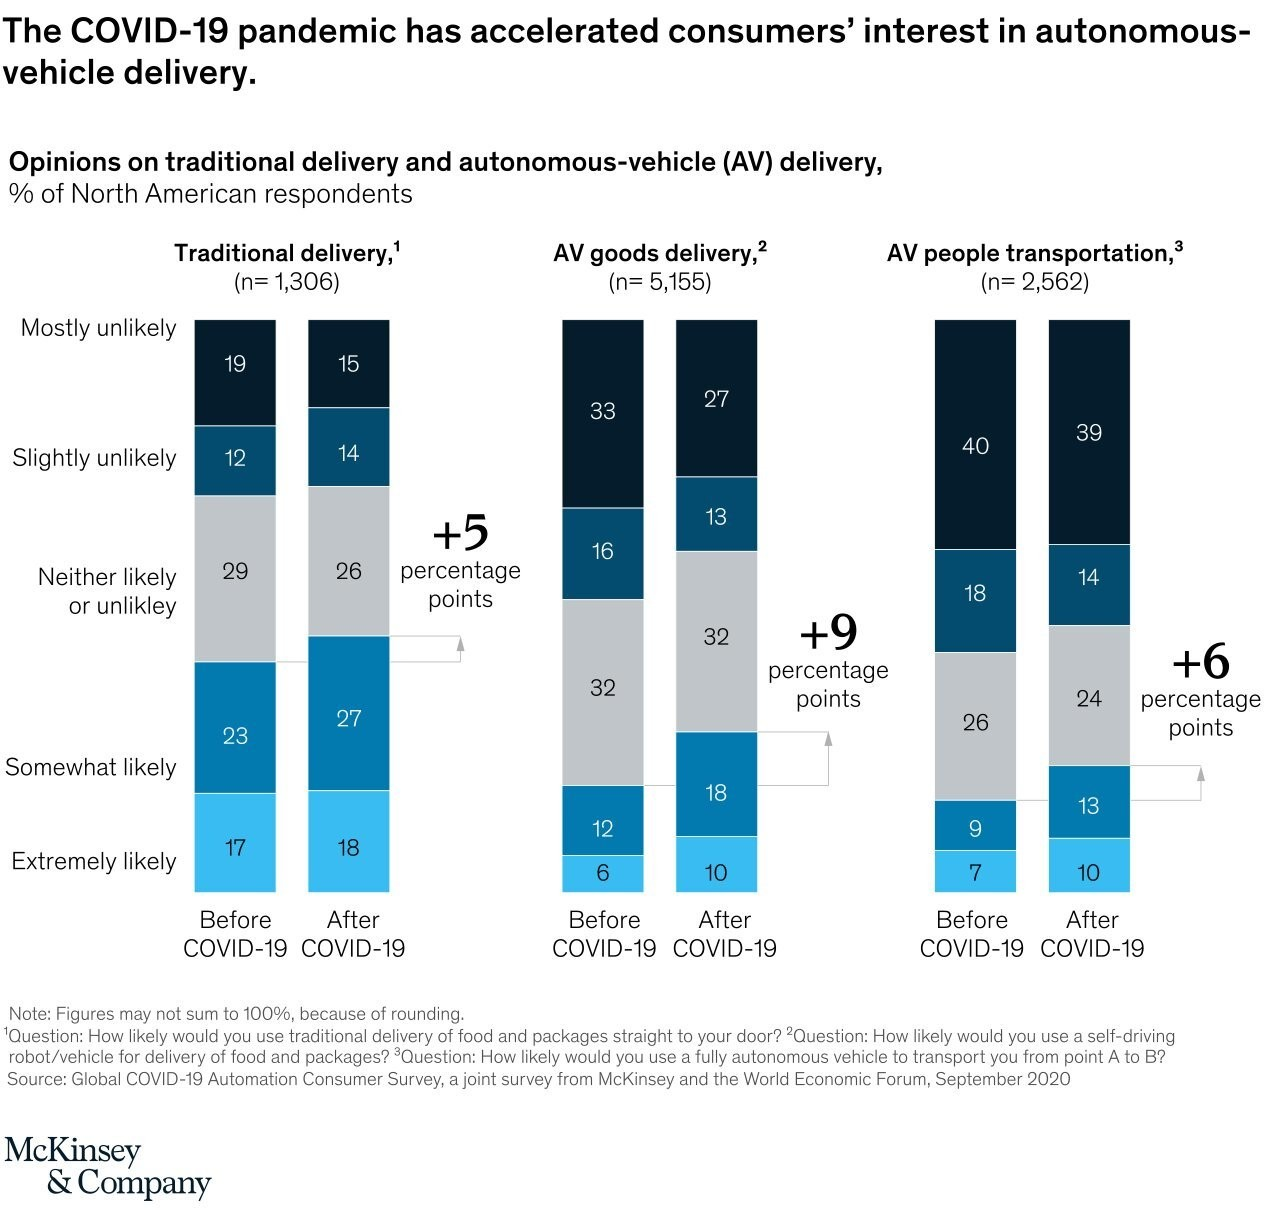 a chart showing that the COVID-19 pandemic has accelerated consumers' interest in autonomous-vehicle delivery